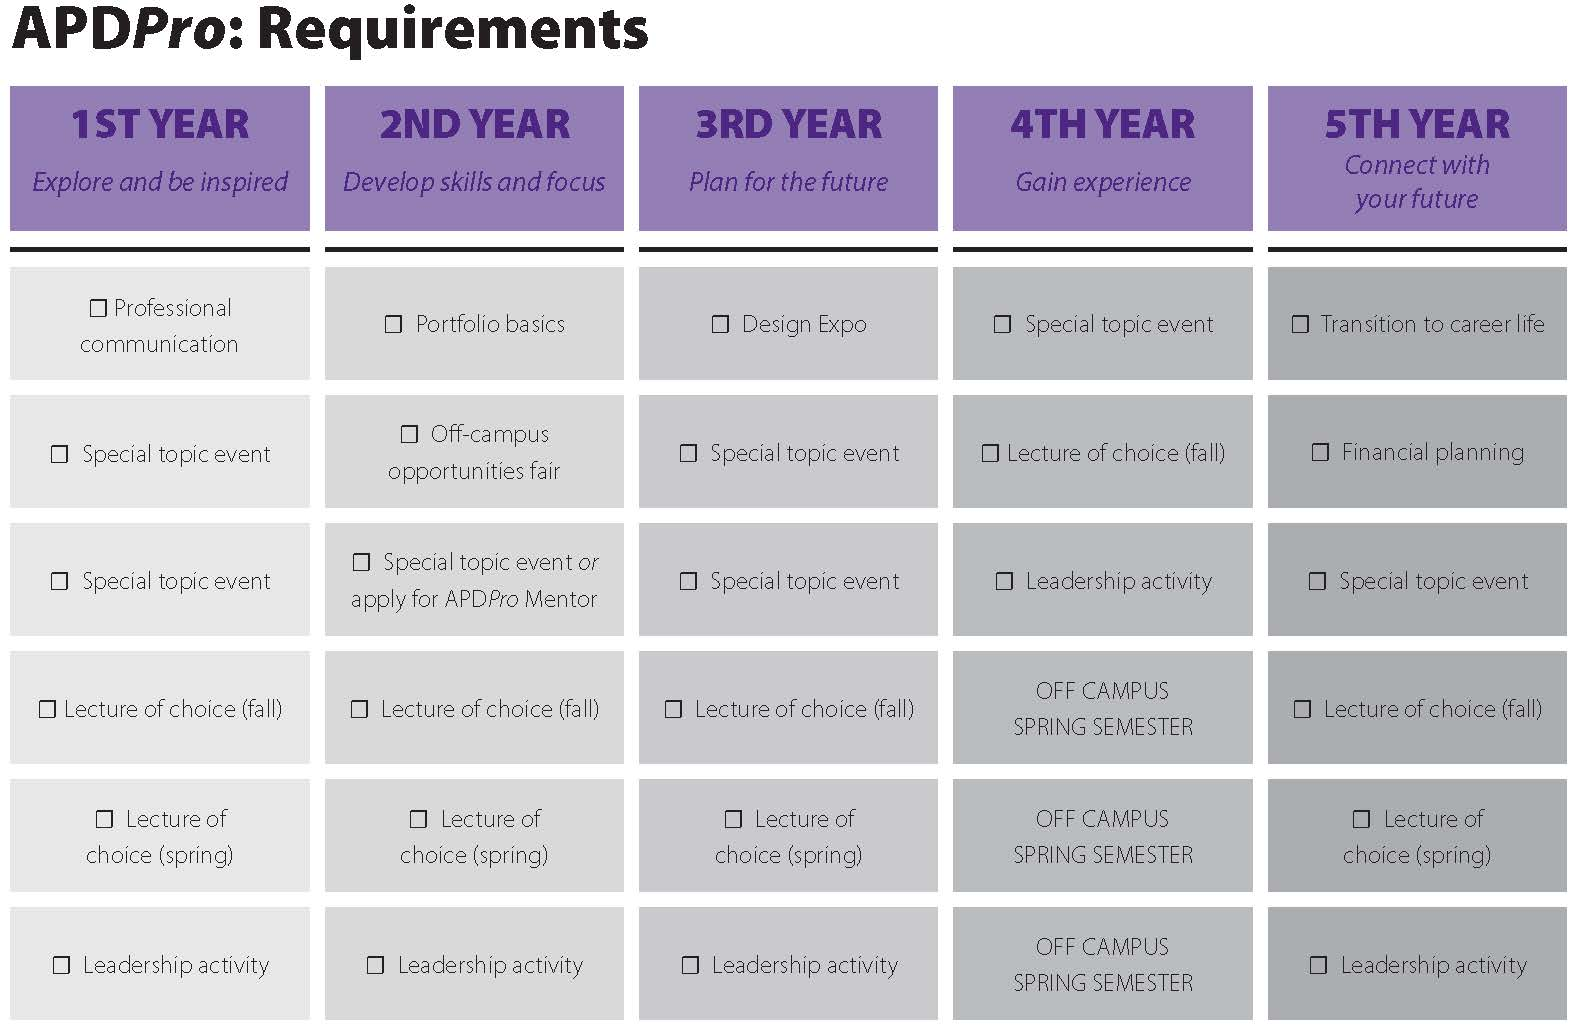 apdpro requirements